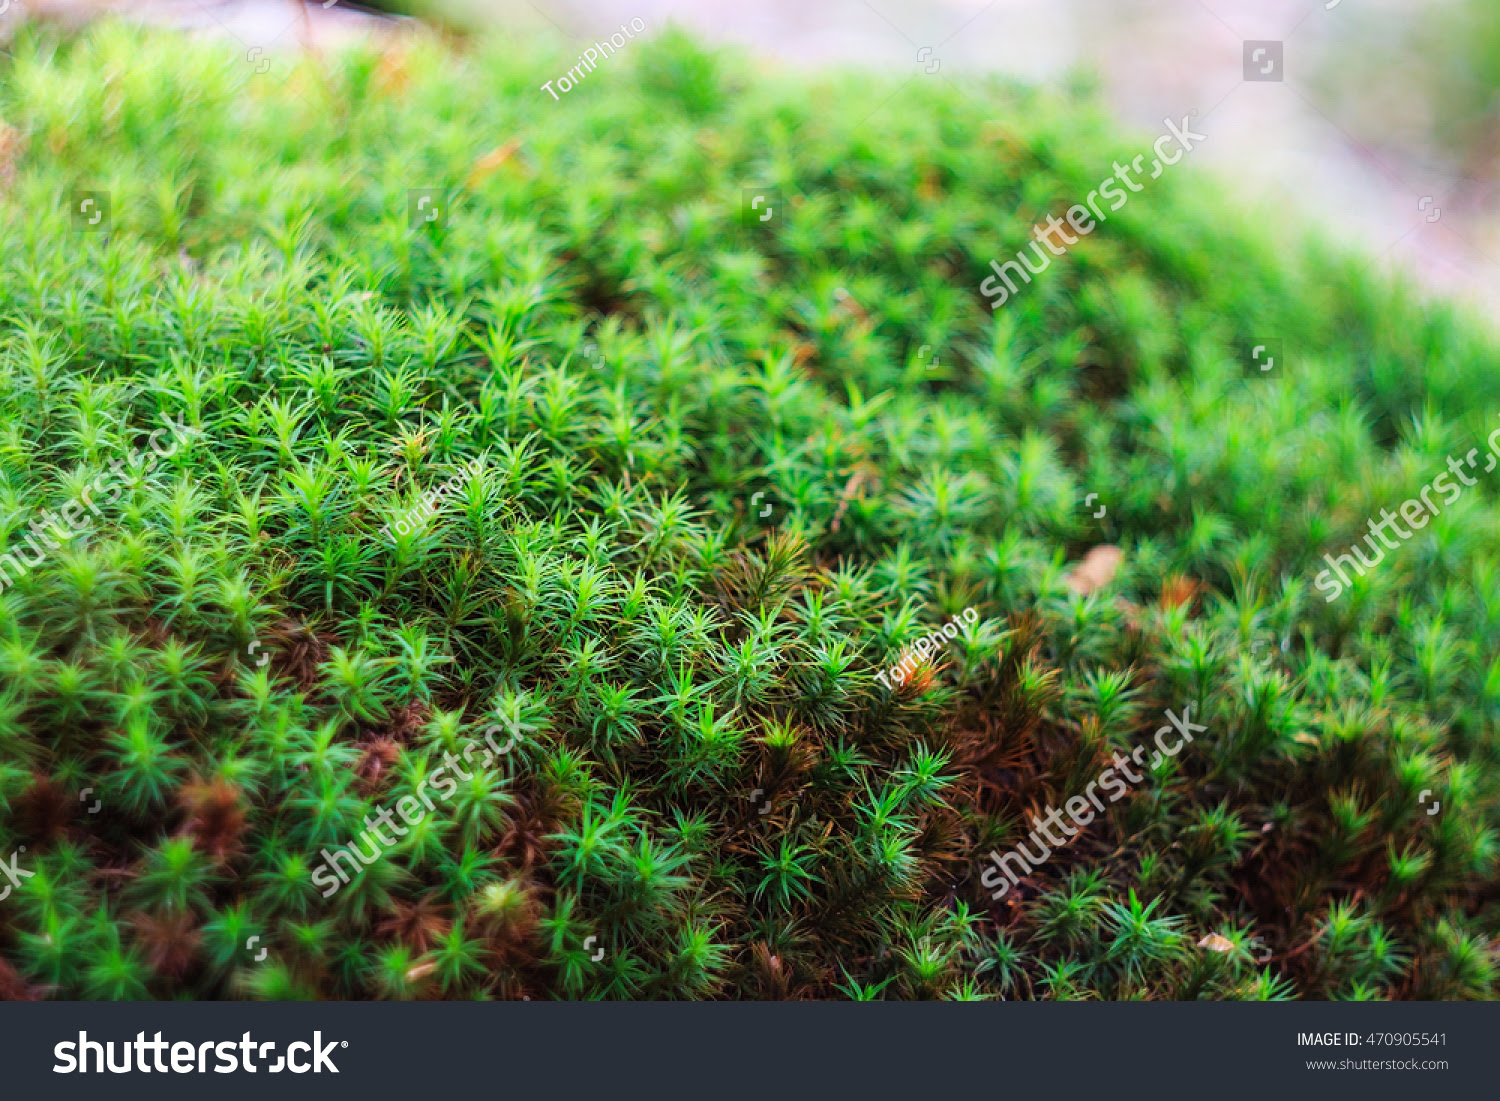 abstract, autumn, backdrop, background, bark, beautiful, blur, bokeh, closeup, color, defocused, design, detail, environment, flora, flower, focus, forest, fresh, grass, green, growth, leaf, lichen, life, macro, moss, mossy, natural, nature, outdoor, pattern, plant, rural, season, shallow, spring, stem, summer, texture, tree, wallpaper, wild, woodland, woods